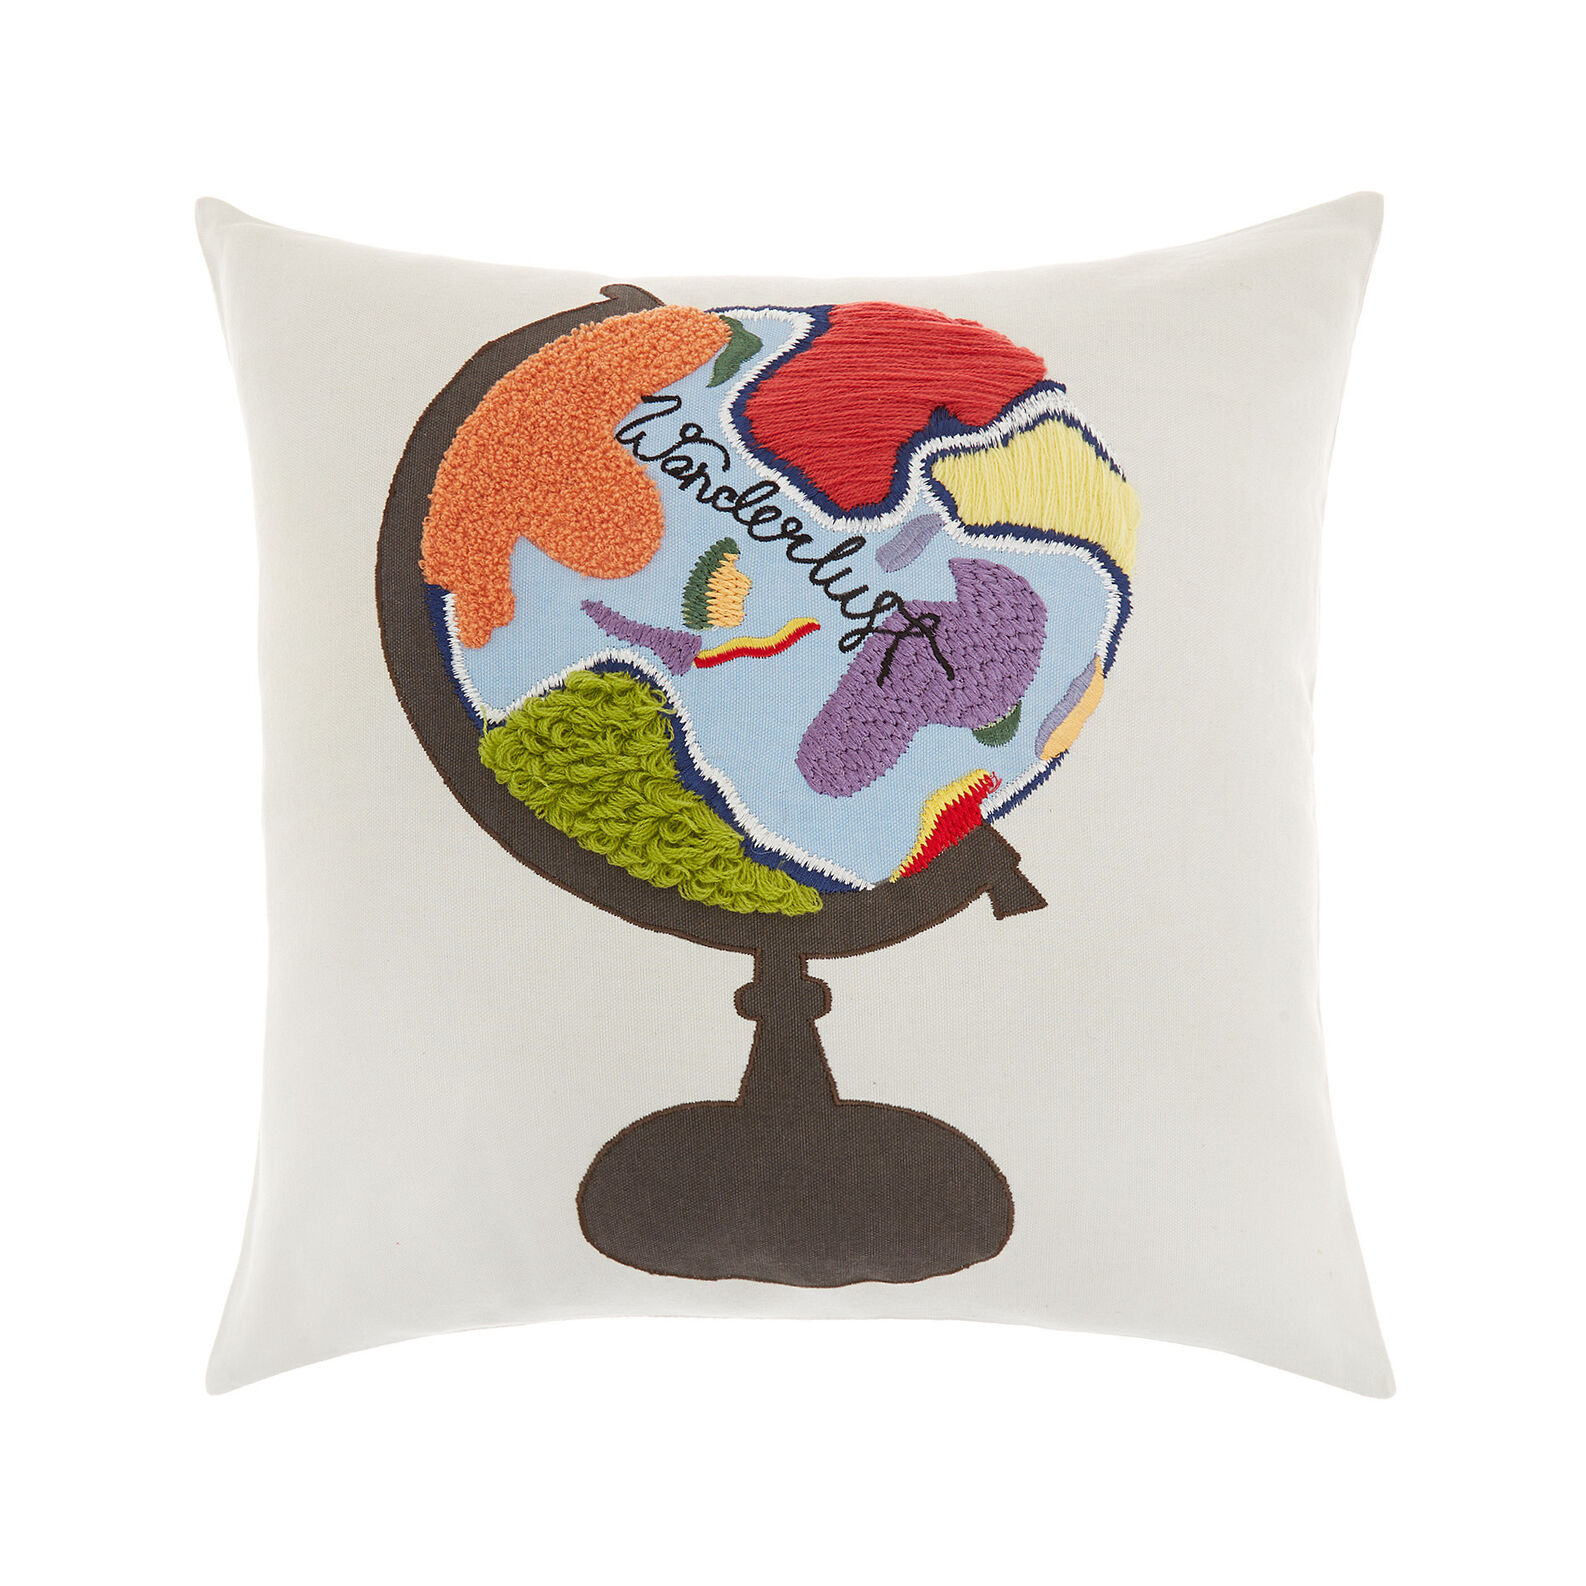 Cotton cushion with Wanderlust embroidery 45 x 45 cm